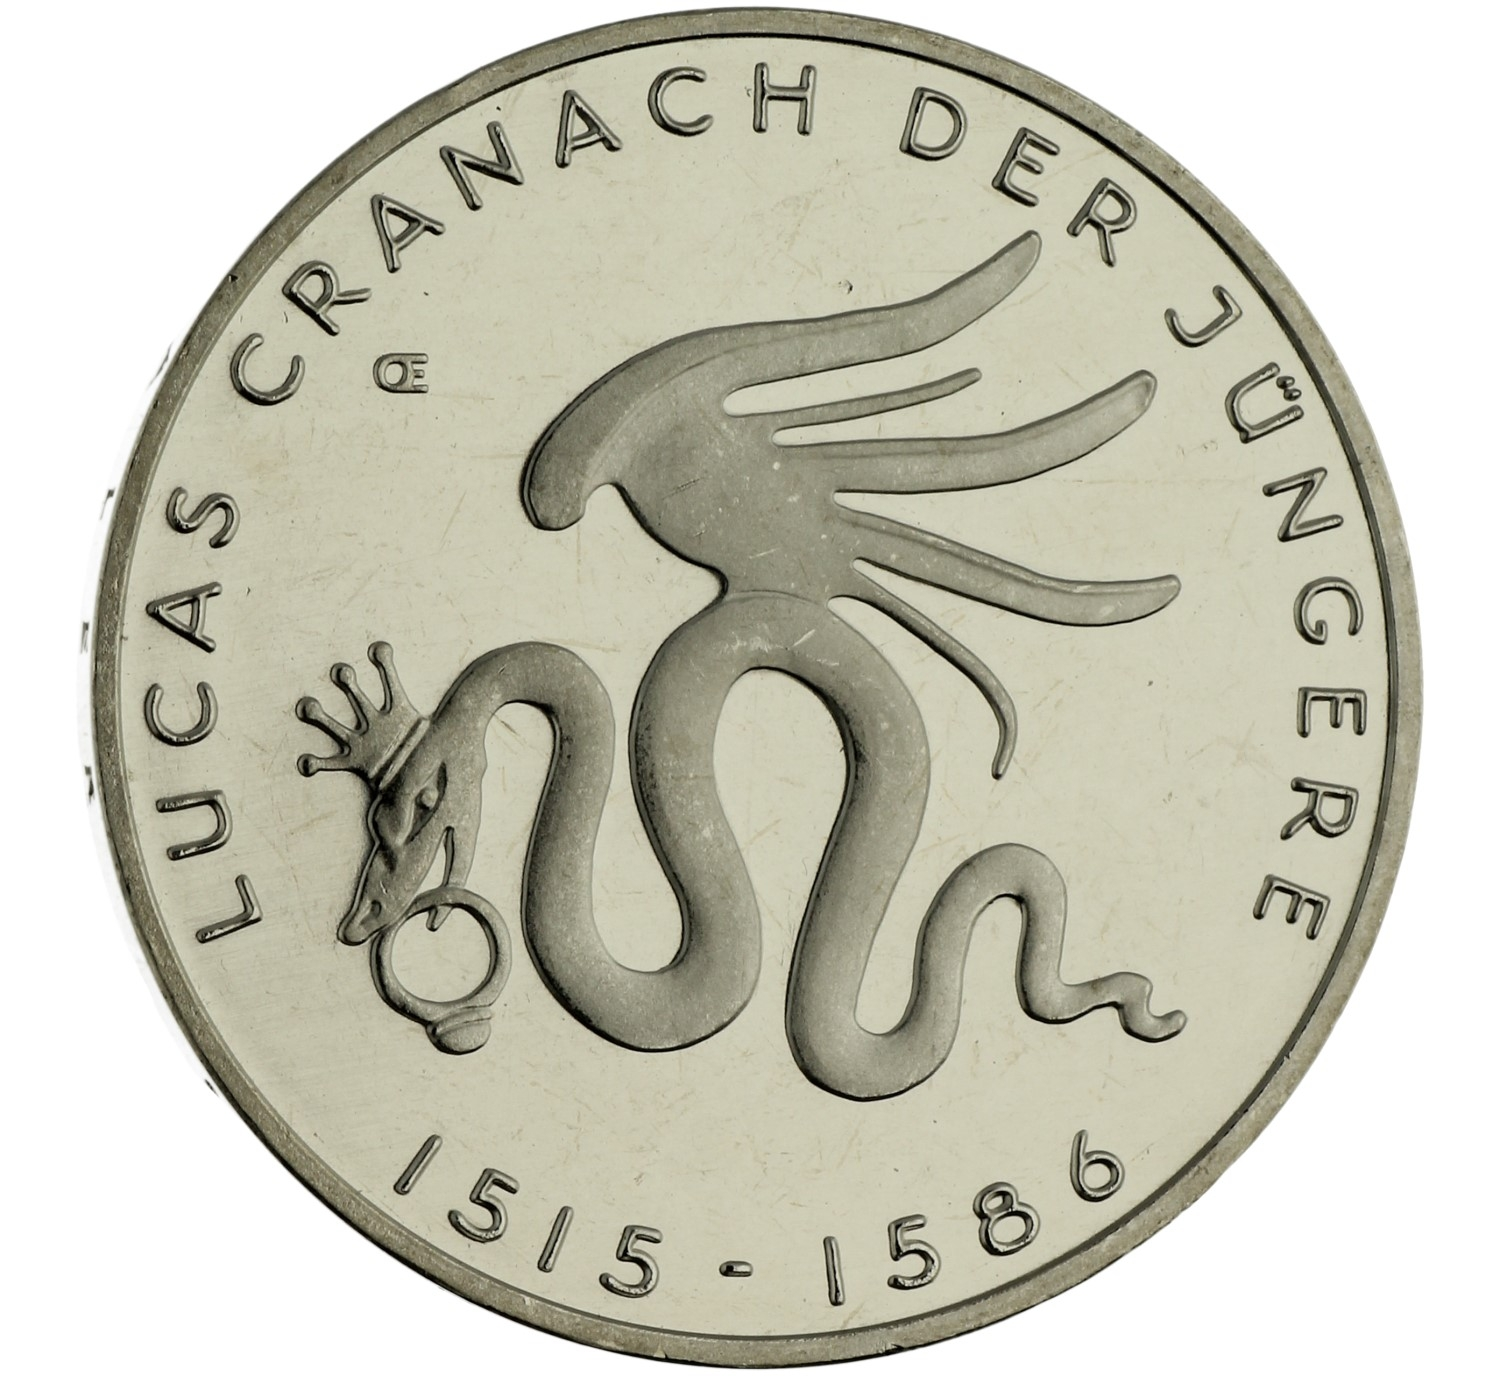 10 Euro - Germany - 2015 G